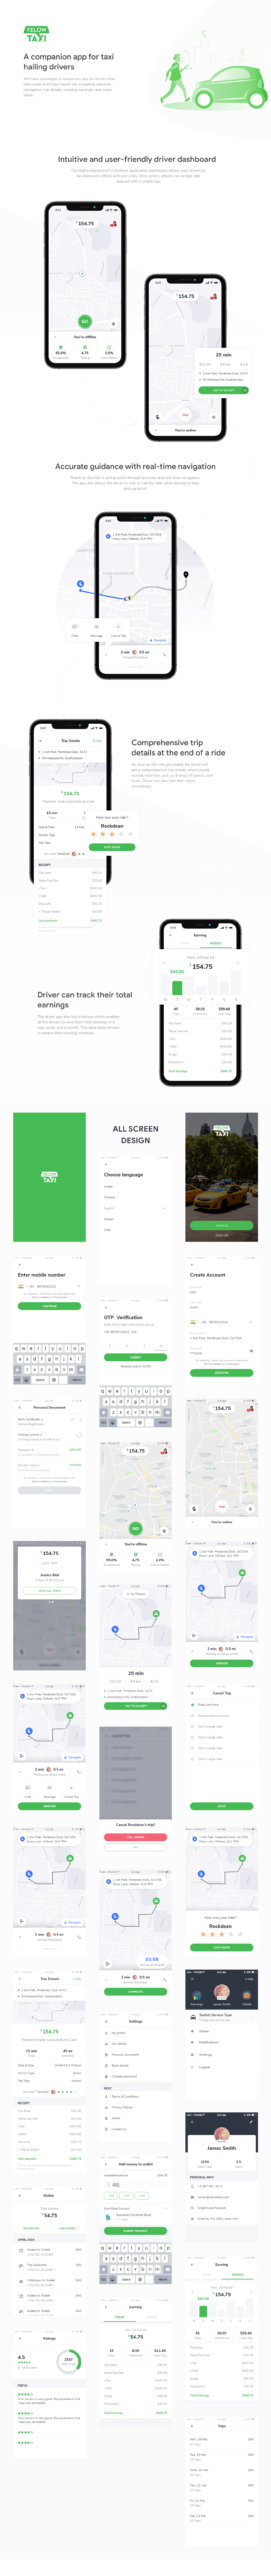 Yelow Taxi Driver App for Adobe XD from UIGarage